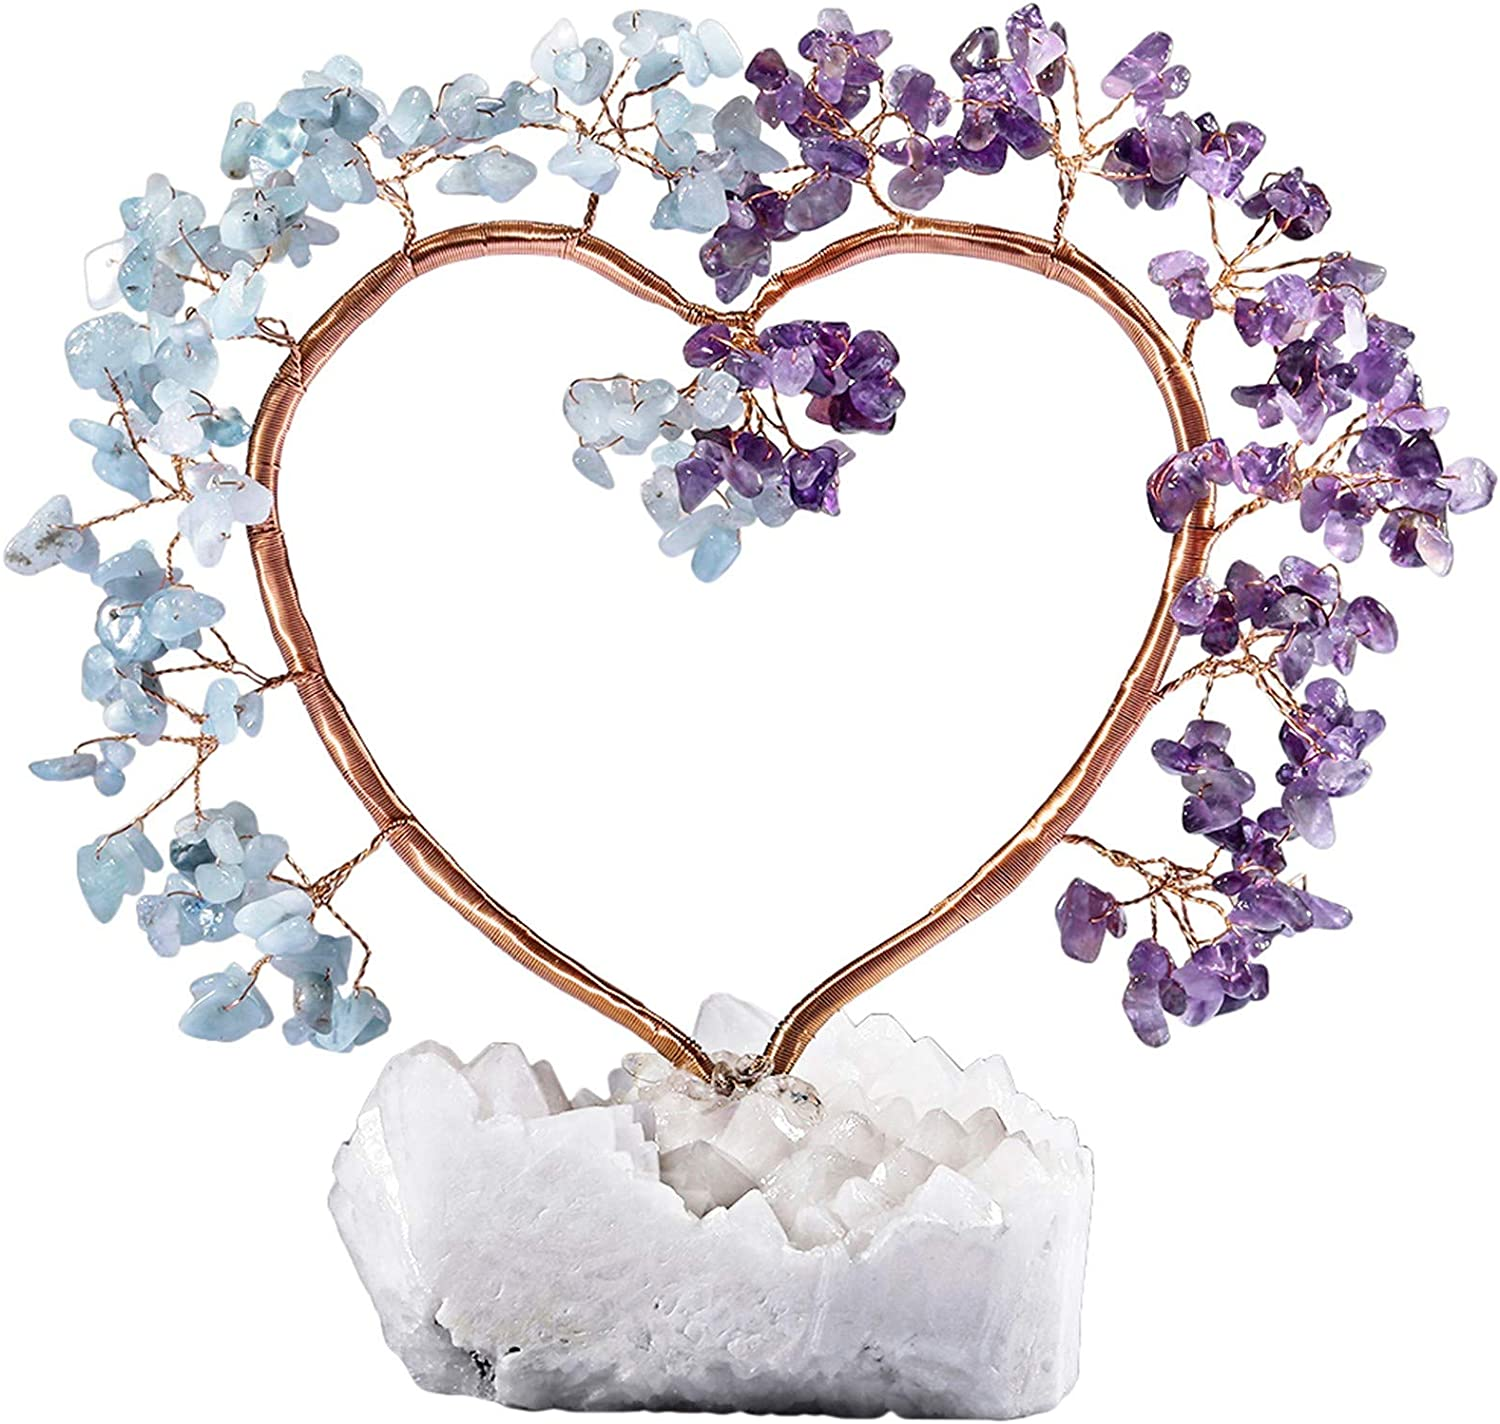 rockcloud Handmade Love Heart Shape Crystal Money Tree with Natural Rock Quartz Geode Base for Wedding Home Office Decor for Wealth and Luck, Amethyst & Aquamarine